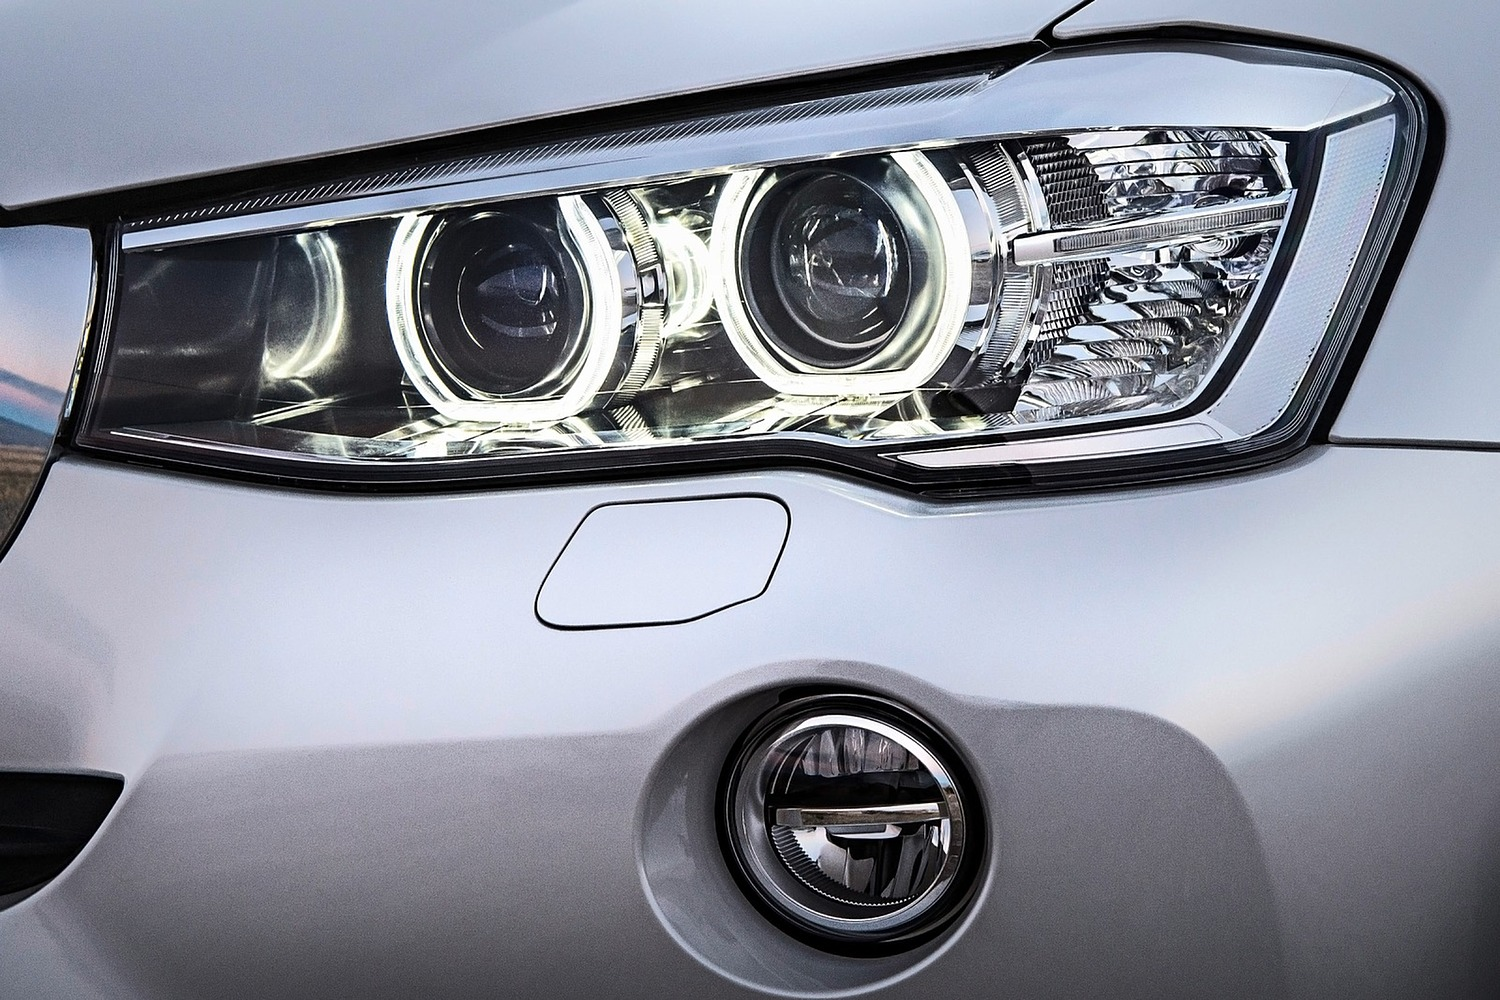 BMW X3 xDrive28d 4dr SUV Exterior Detail (2015 model year shown)